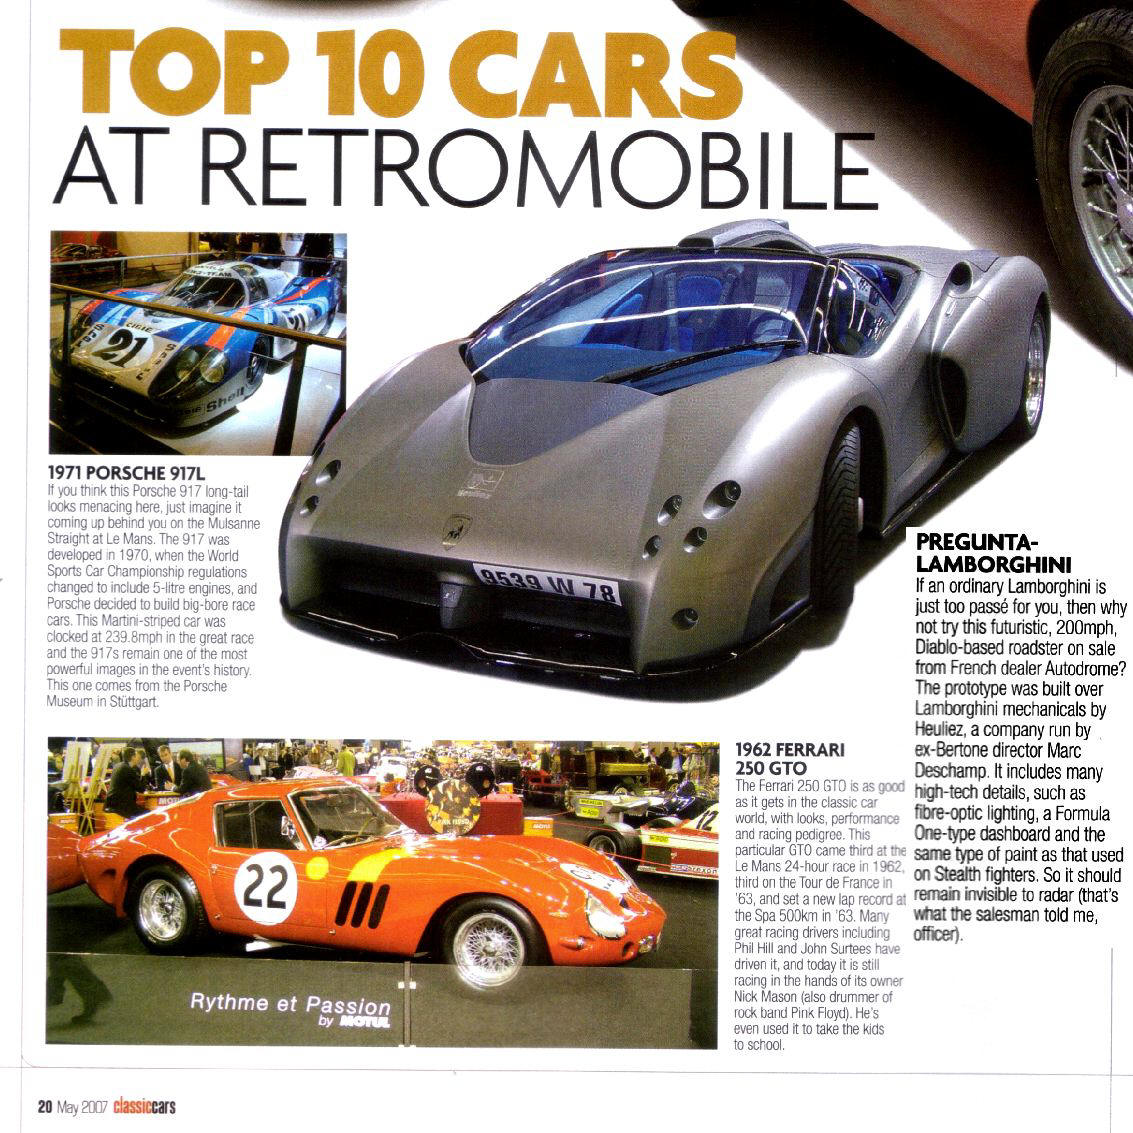 Classic Cars ranks the